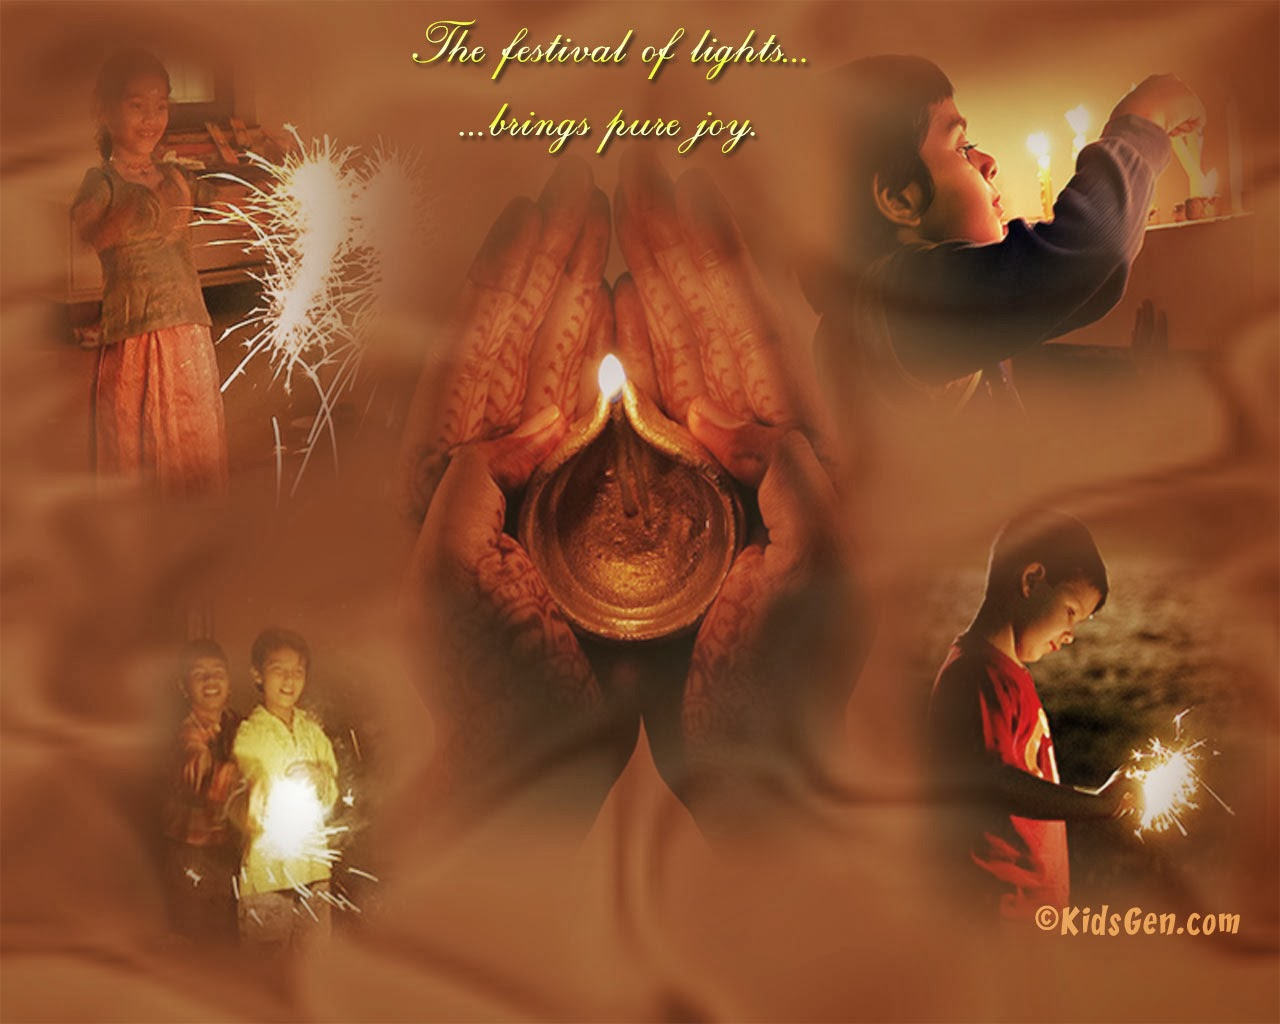 ALL-IN-ONE WALLPAPERS: Diwali Festival Of Lights Wallpapers